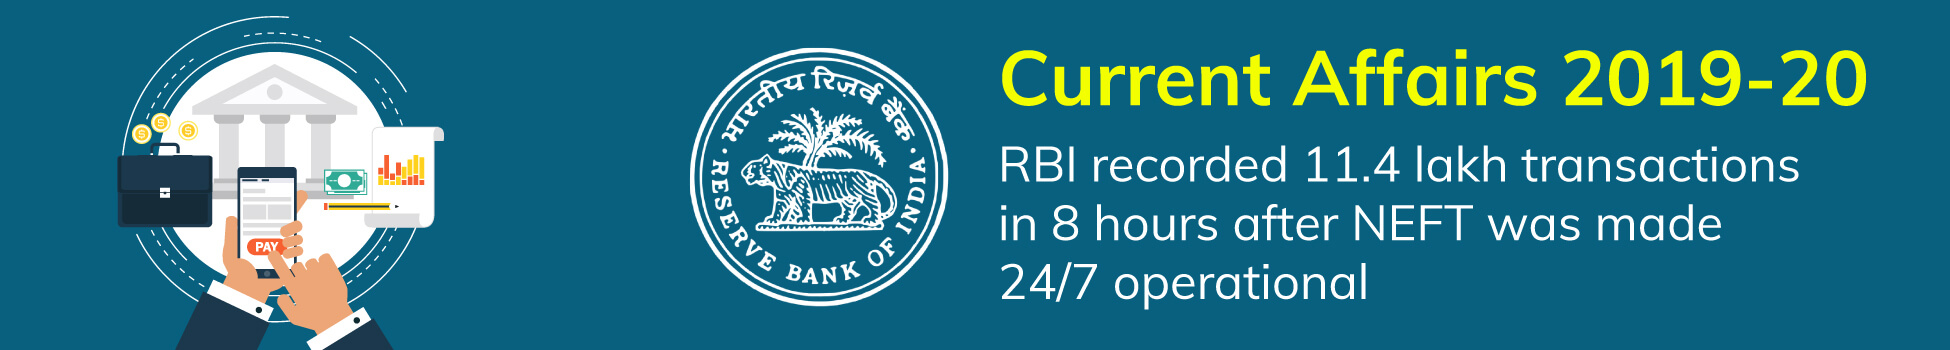 Current Affairs 2019-20 RBI recorded 11.4 lakh transactions in 8 hours after NEFT was made 24/7 operational